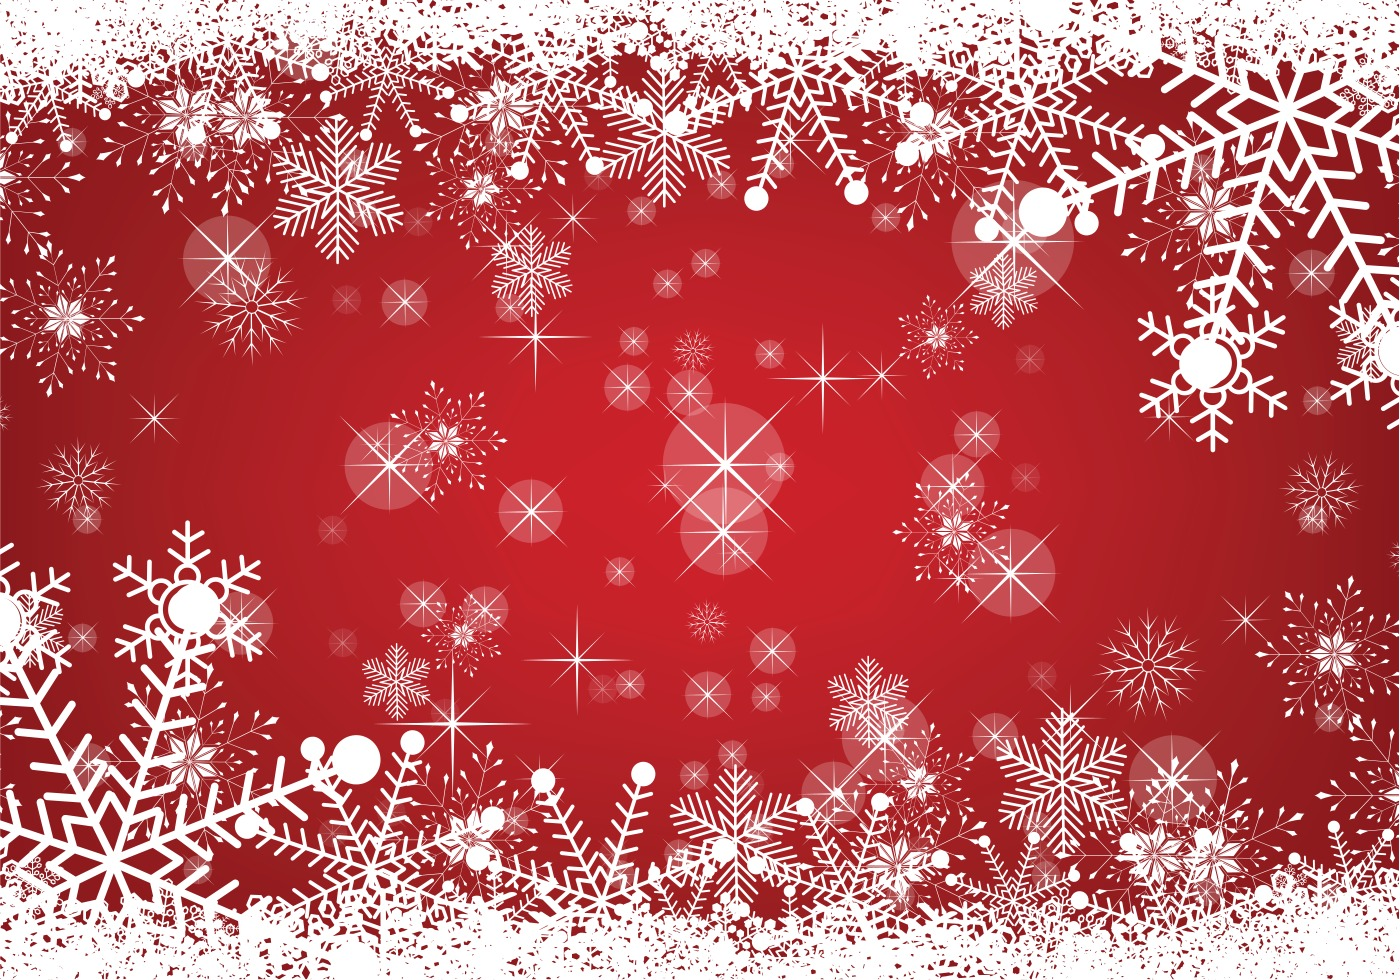 snowy christmas background download free vectors clipart graphics vector art snowy christmas background download